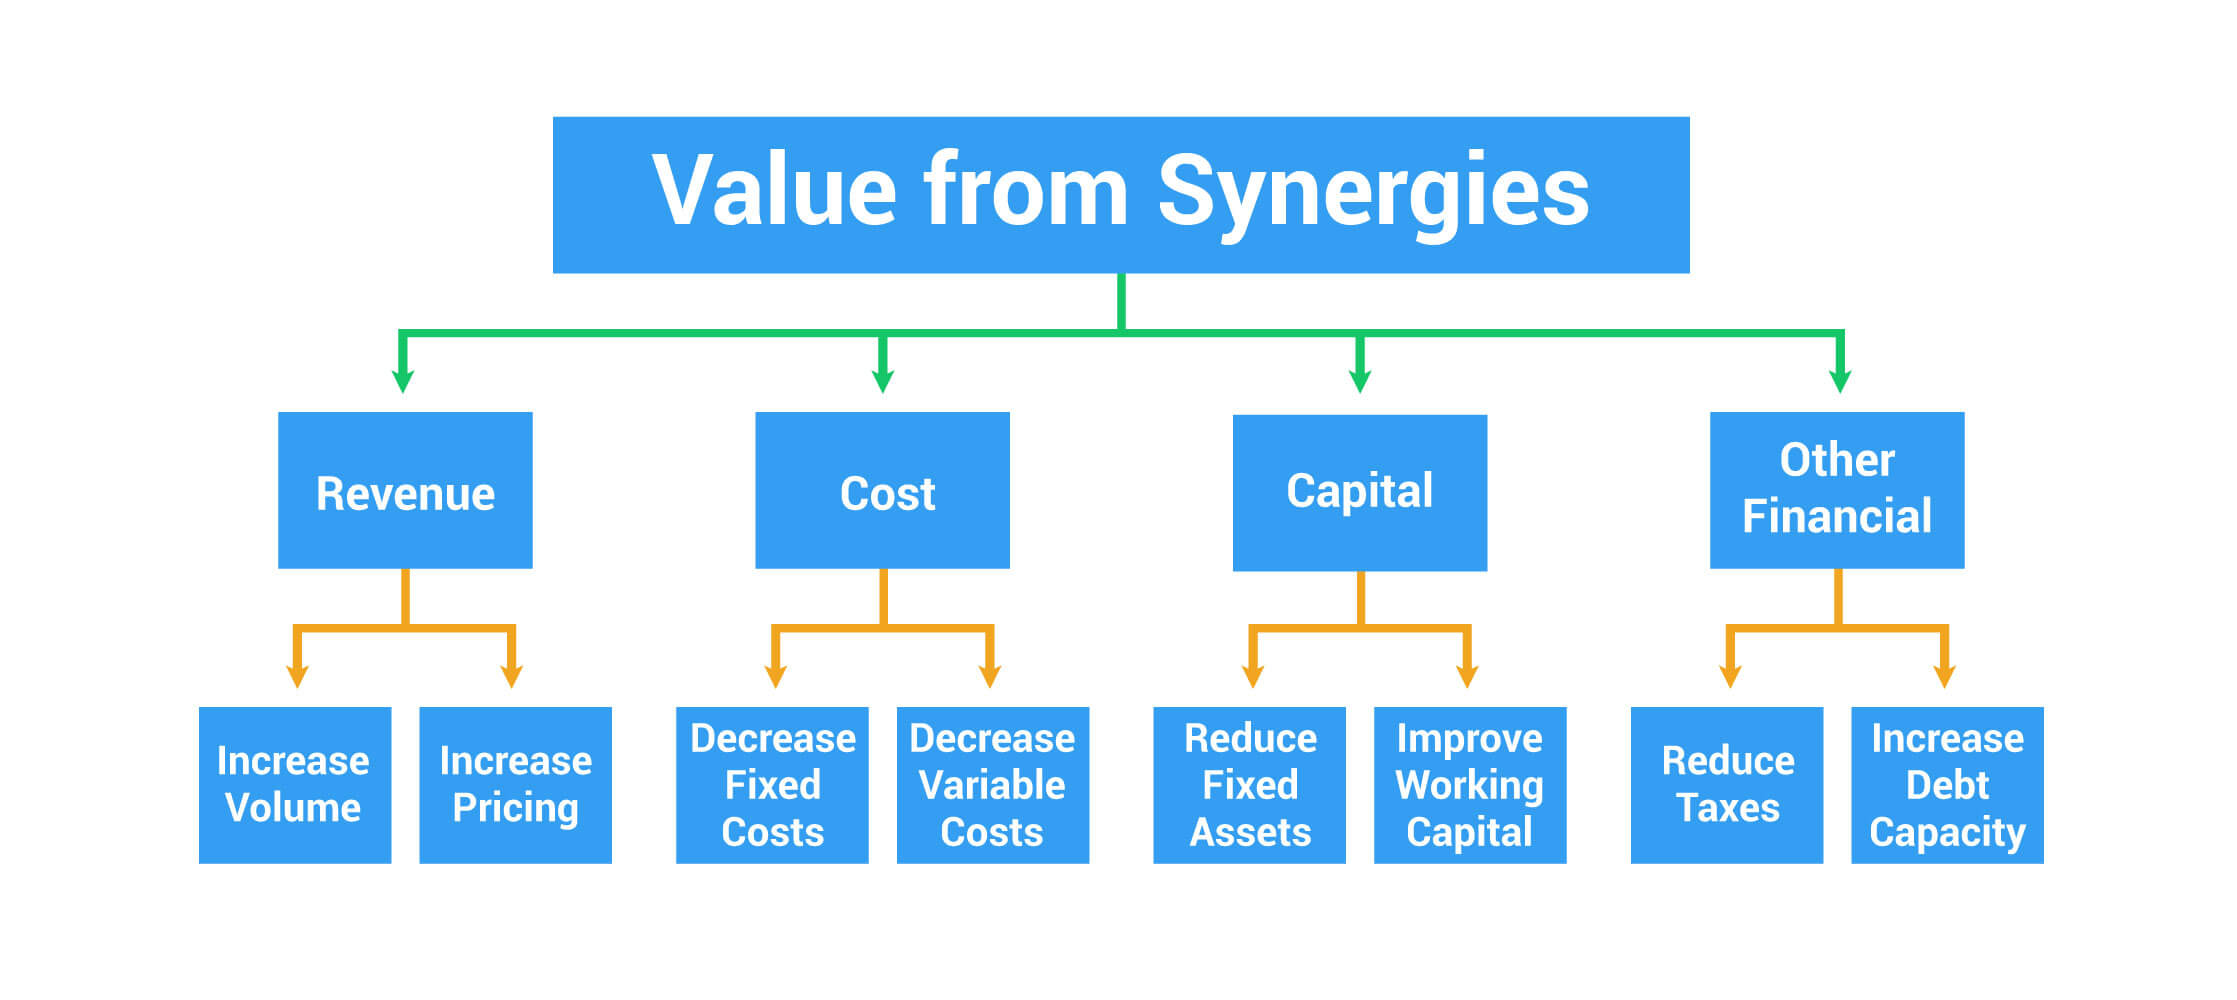 value from M&A Synergies